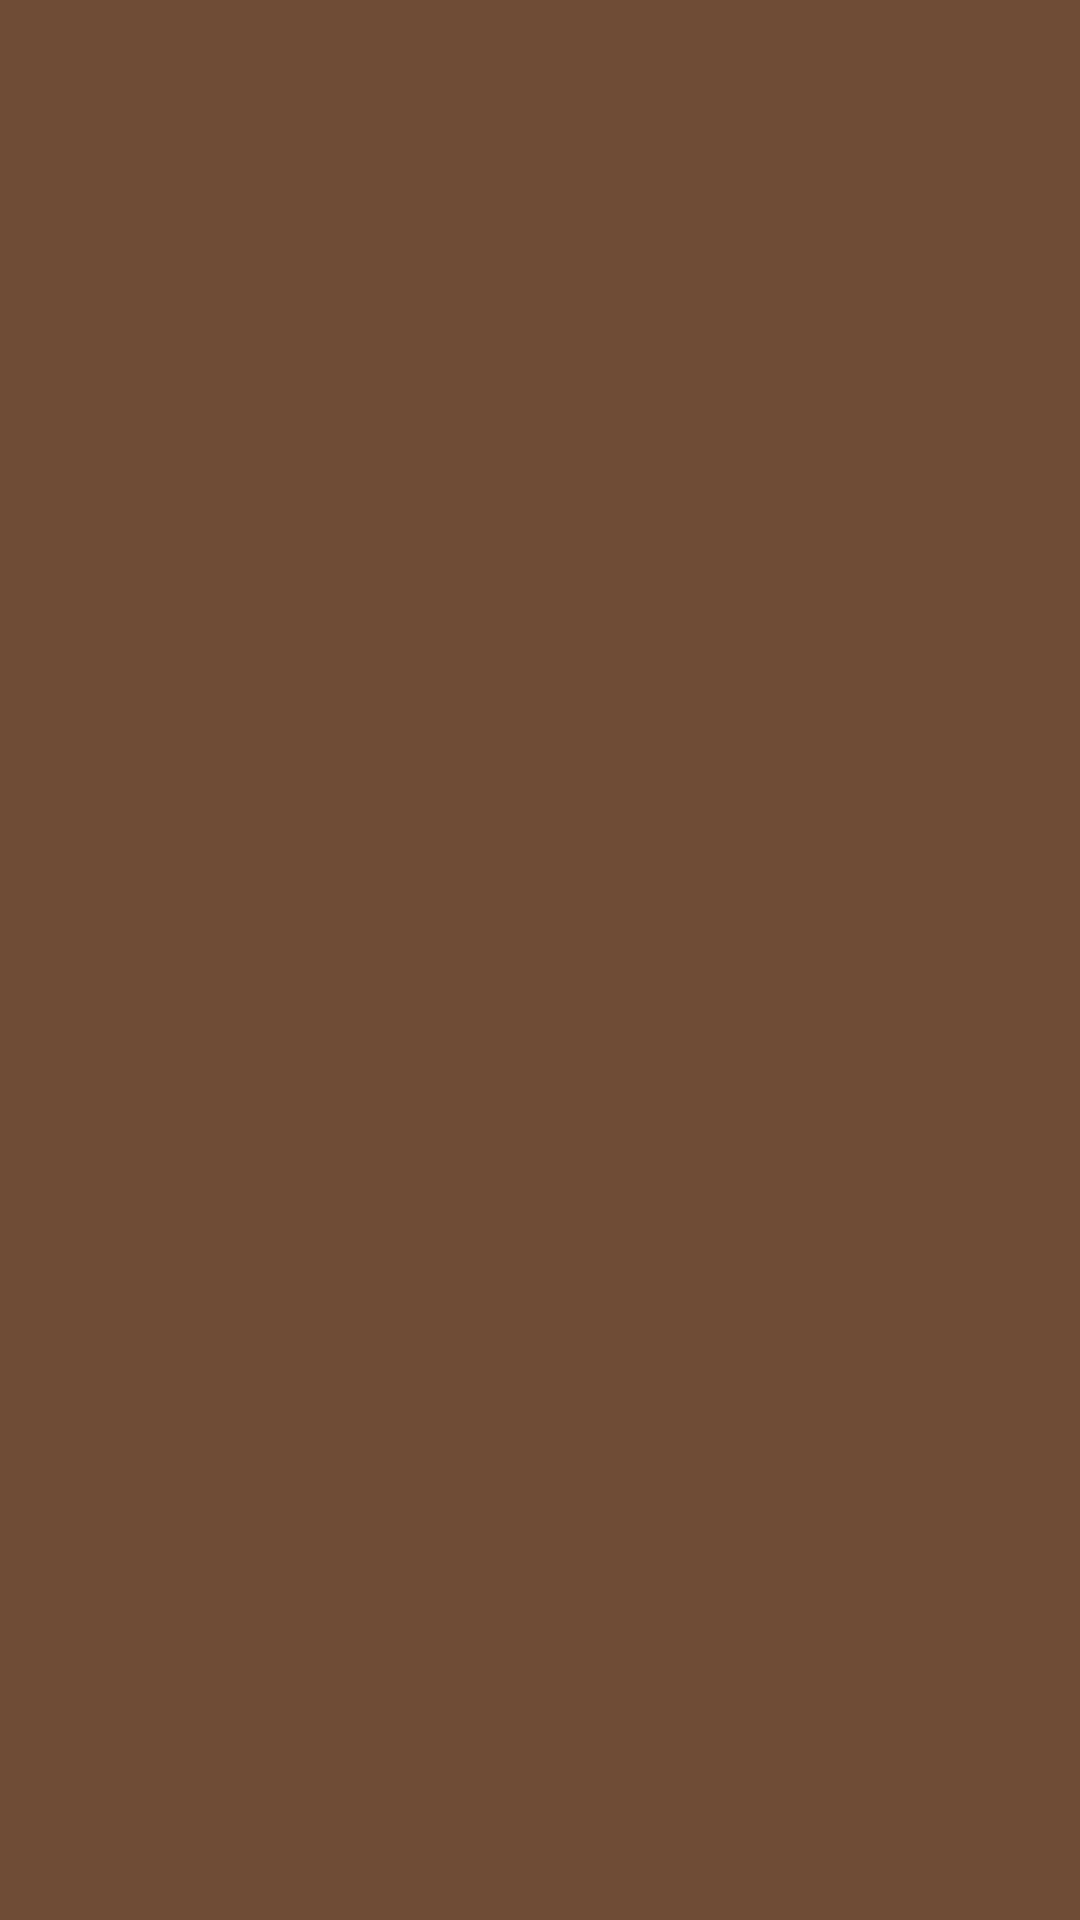 1080x1920 Tuscan Brown Solid Color Background